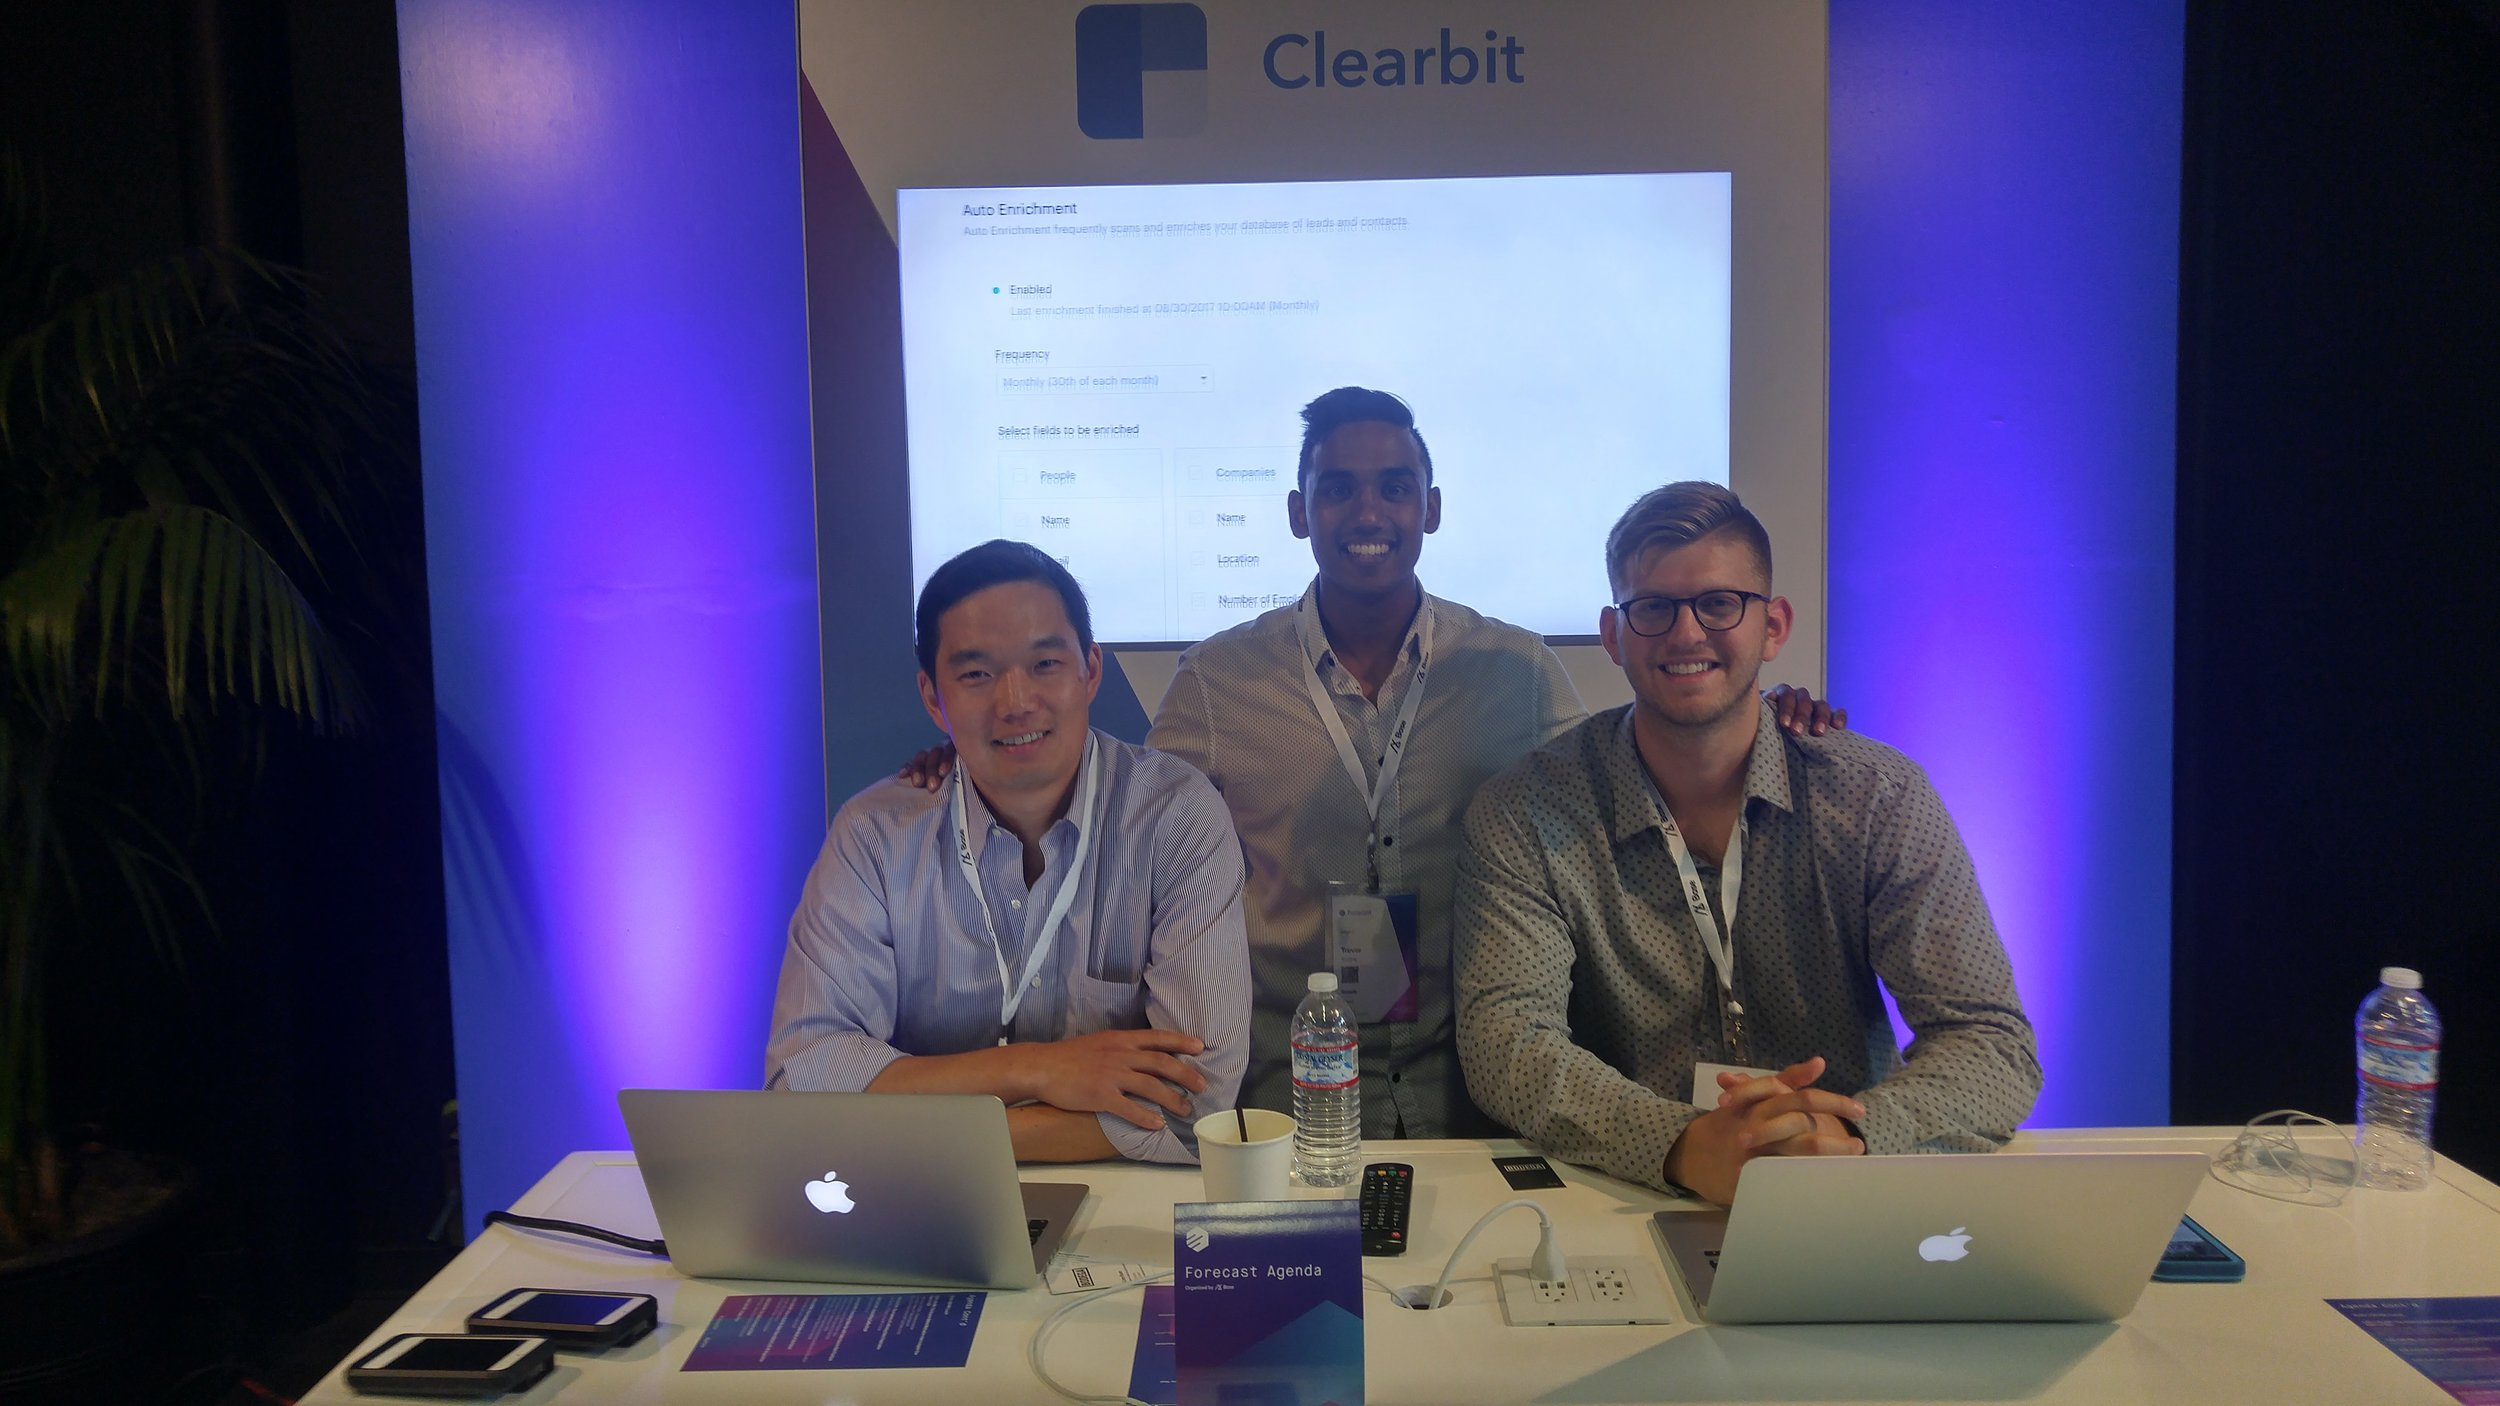 Action shot of the Clearbit sales team and I at Base CRM's annual conference.